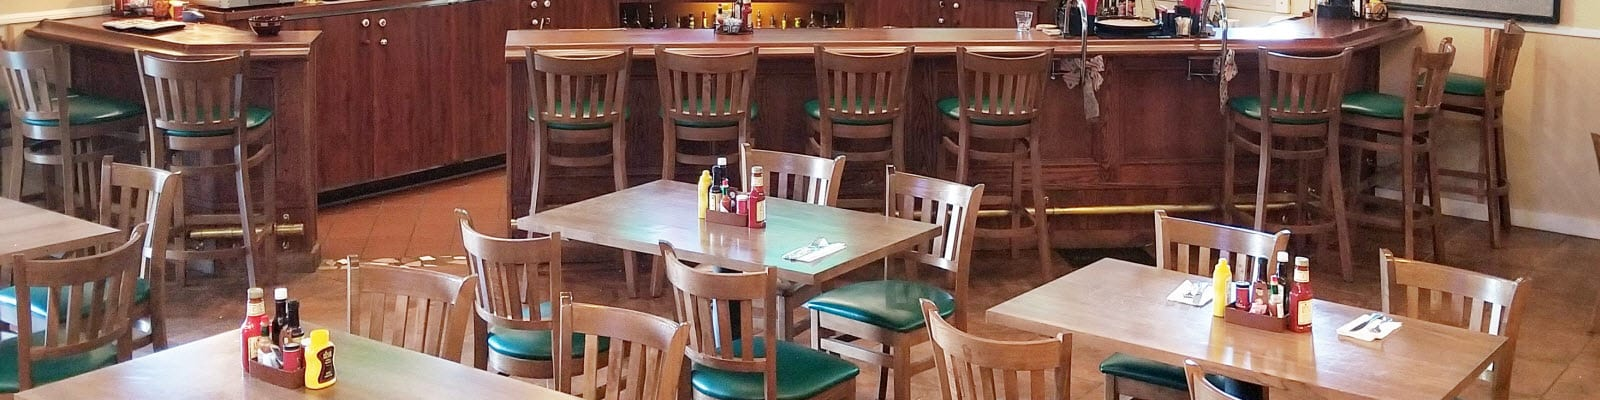 Wood restaurant tables and chairs